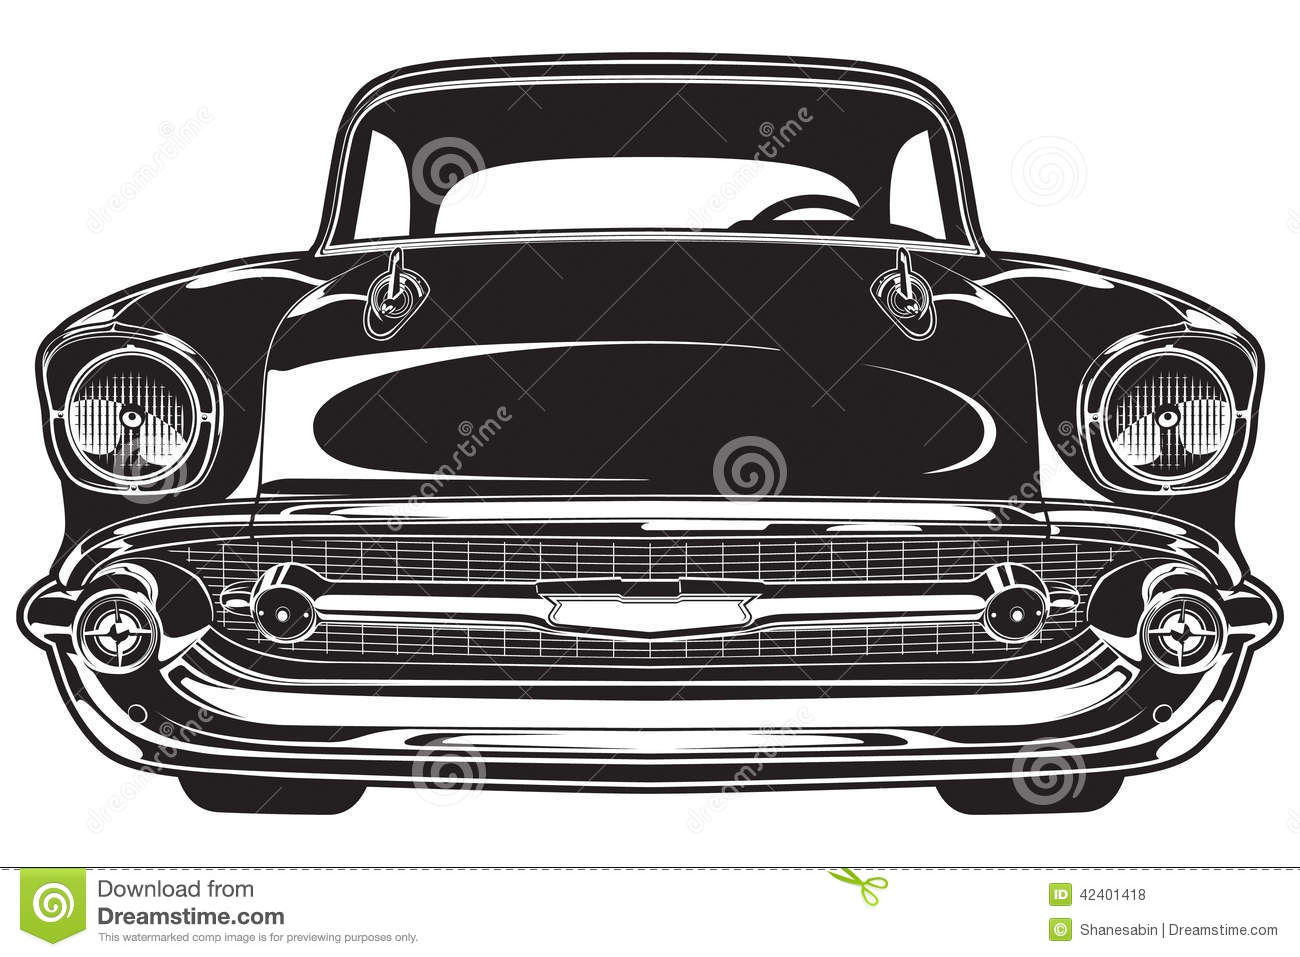 Classic Car clipart front view (84+) Vector front car classic